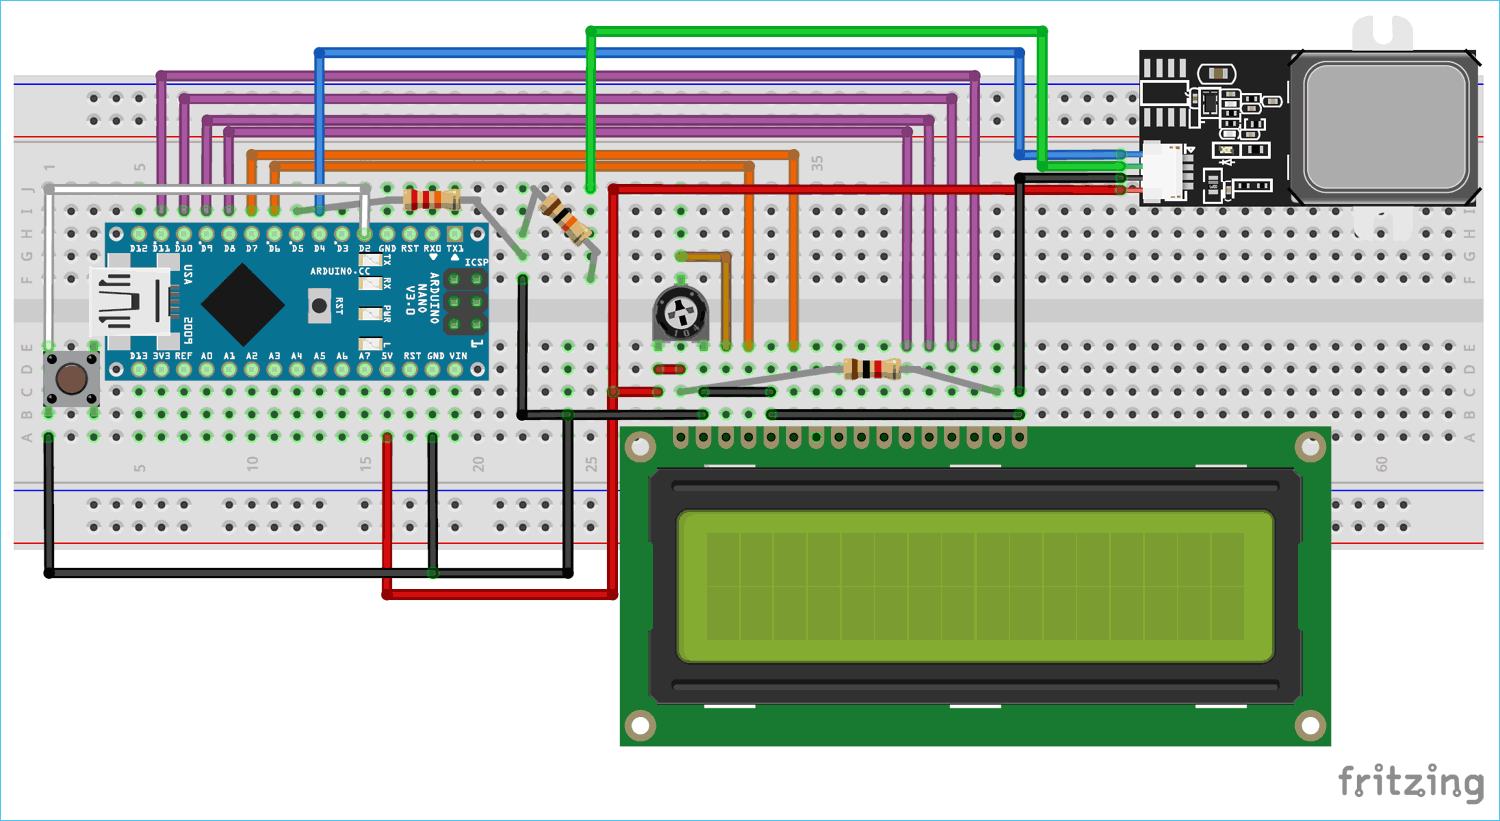 Circuit Diagram for Connecting GT511C3 Finger Print Sensor with Arduino